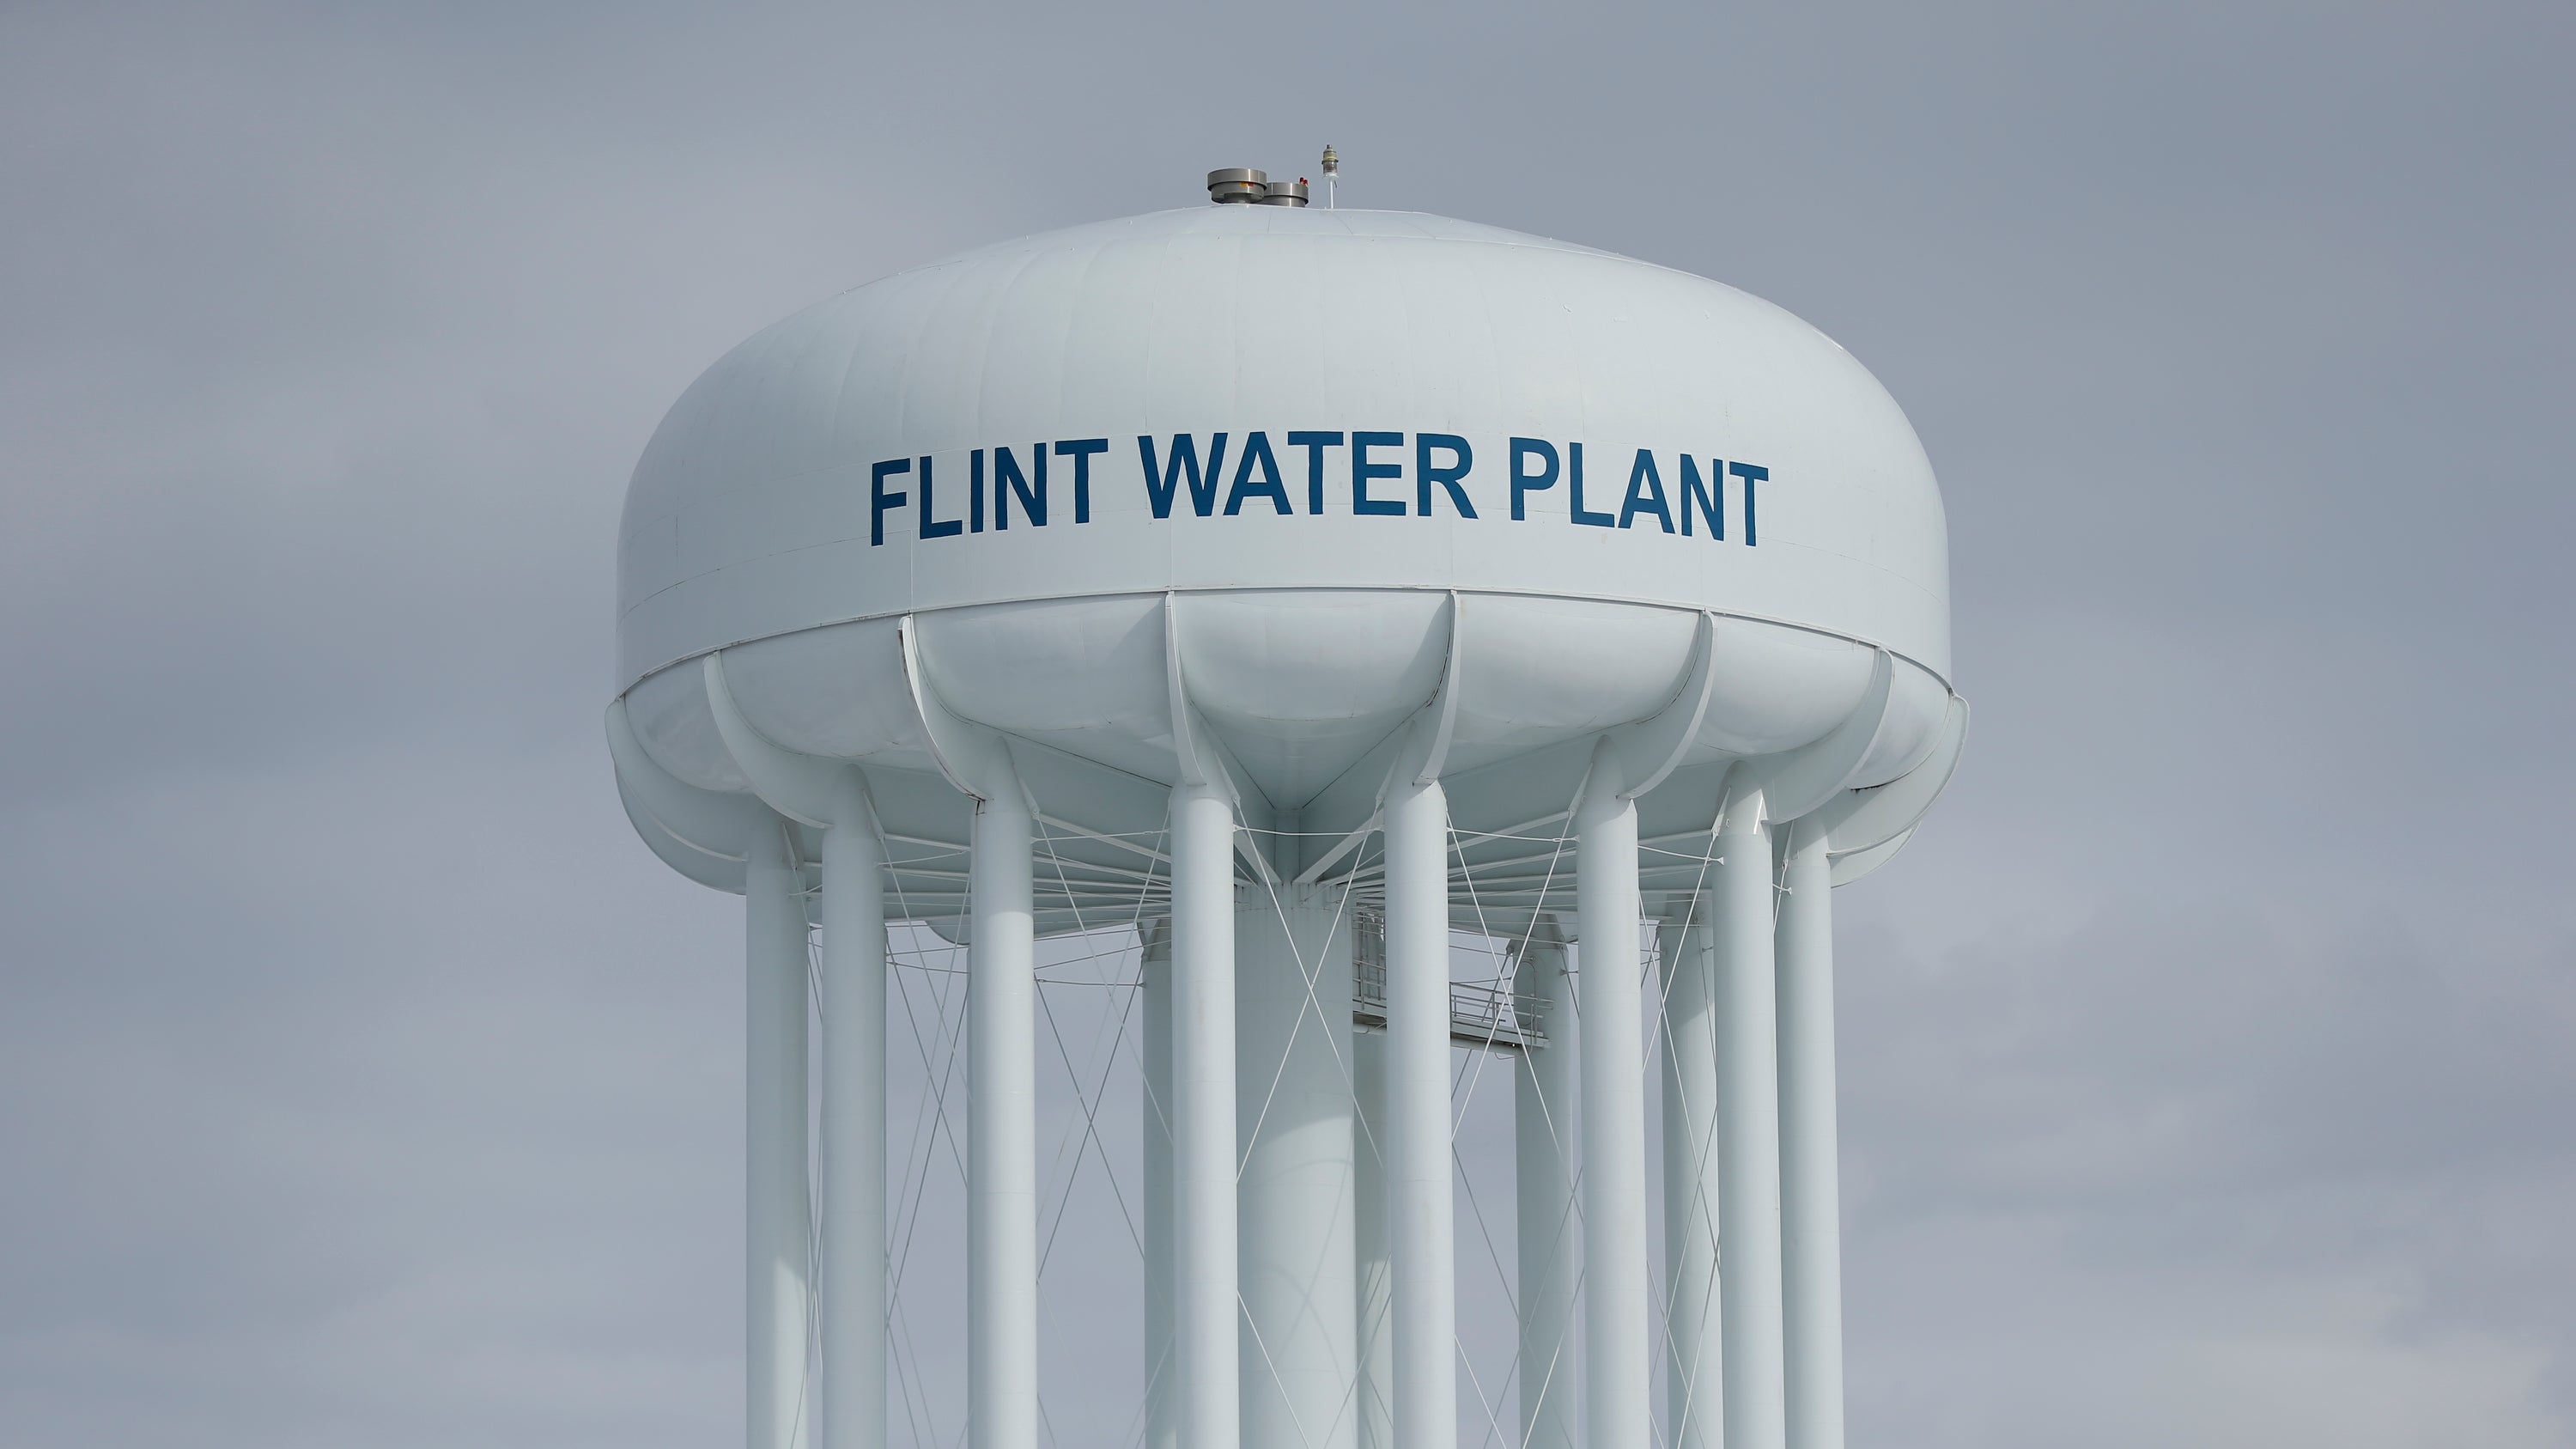 Top Michigan Health Official On Trial For Flint Water Crisis Upgraded To Fancy New Job